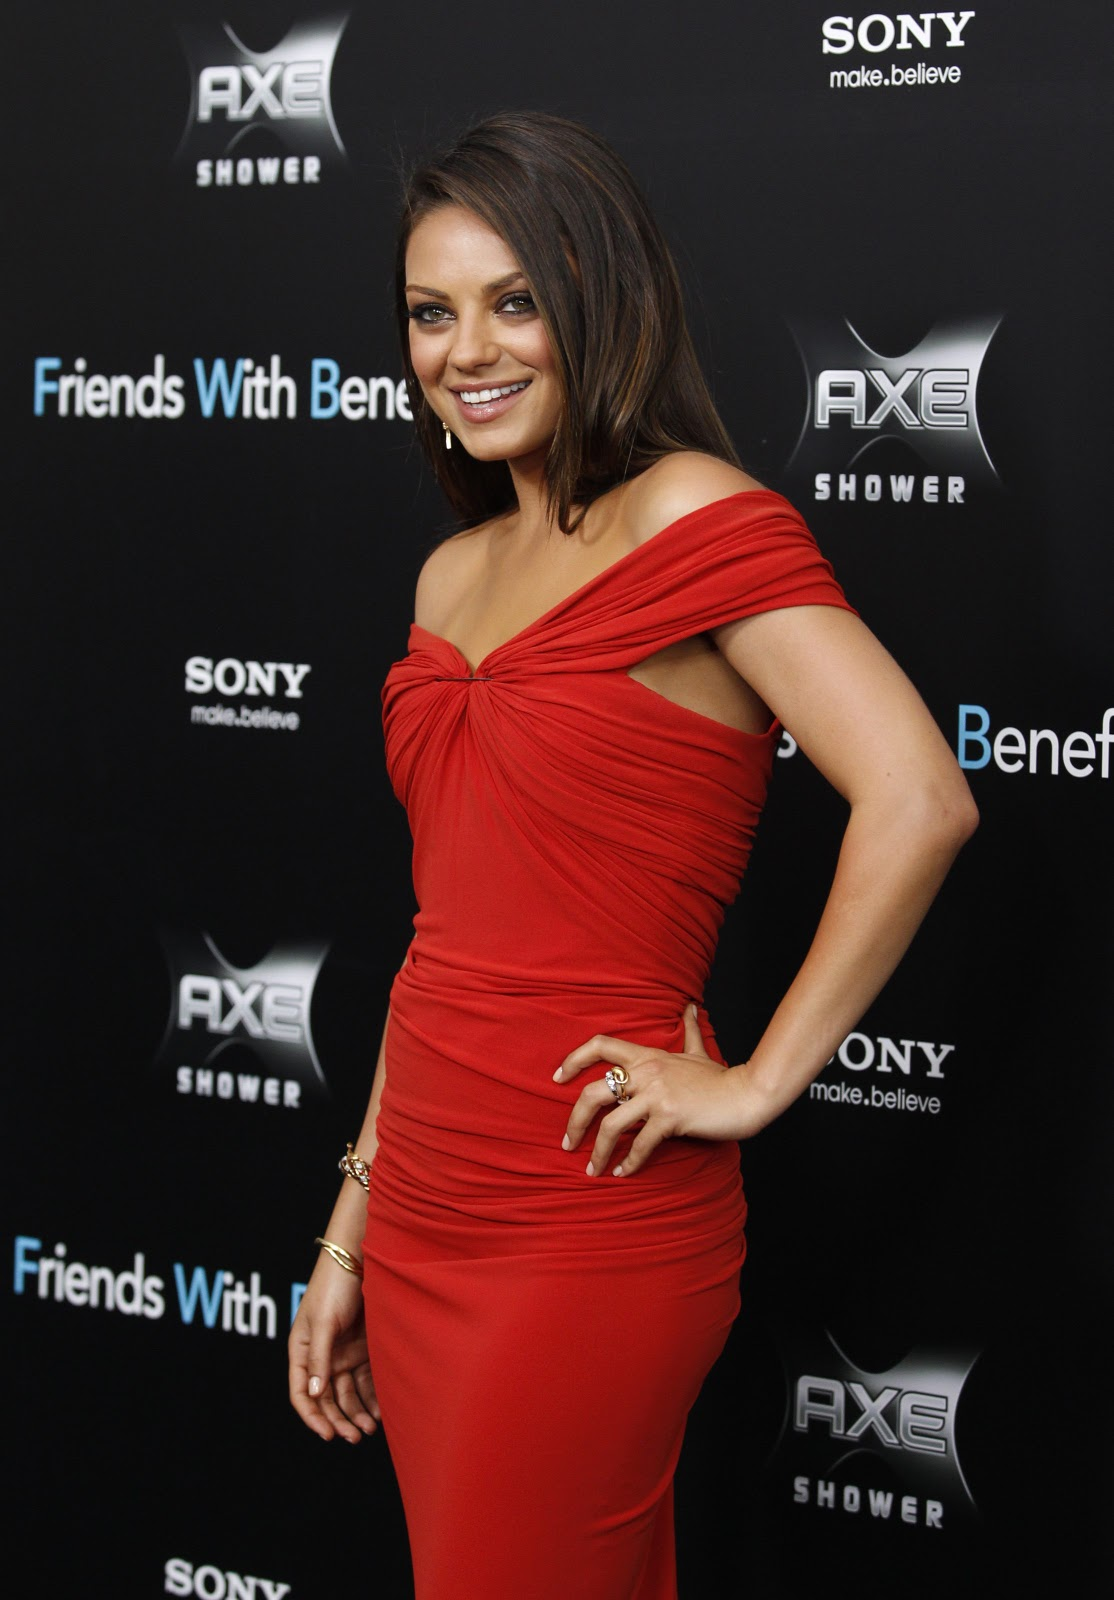 Mila Kunis in Red Dress - Styleofmedia